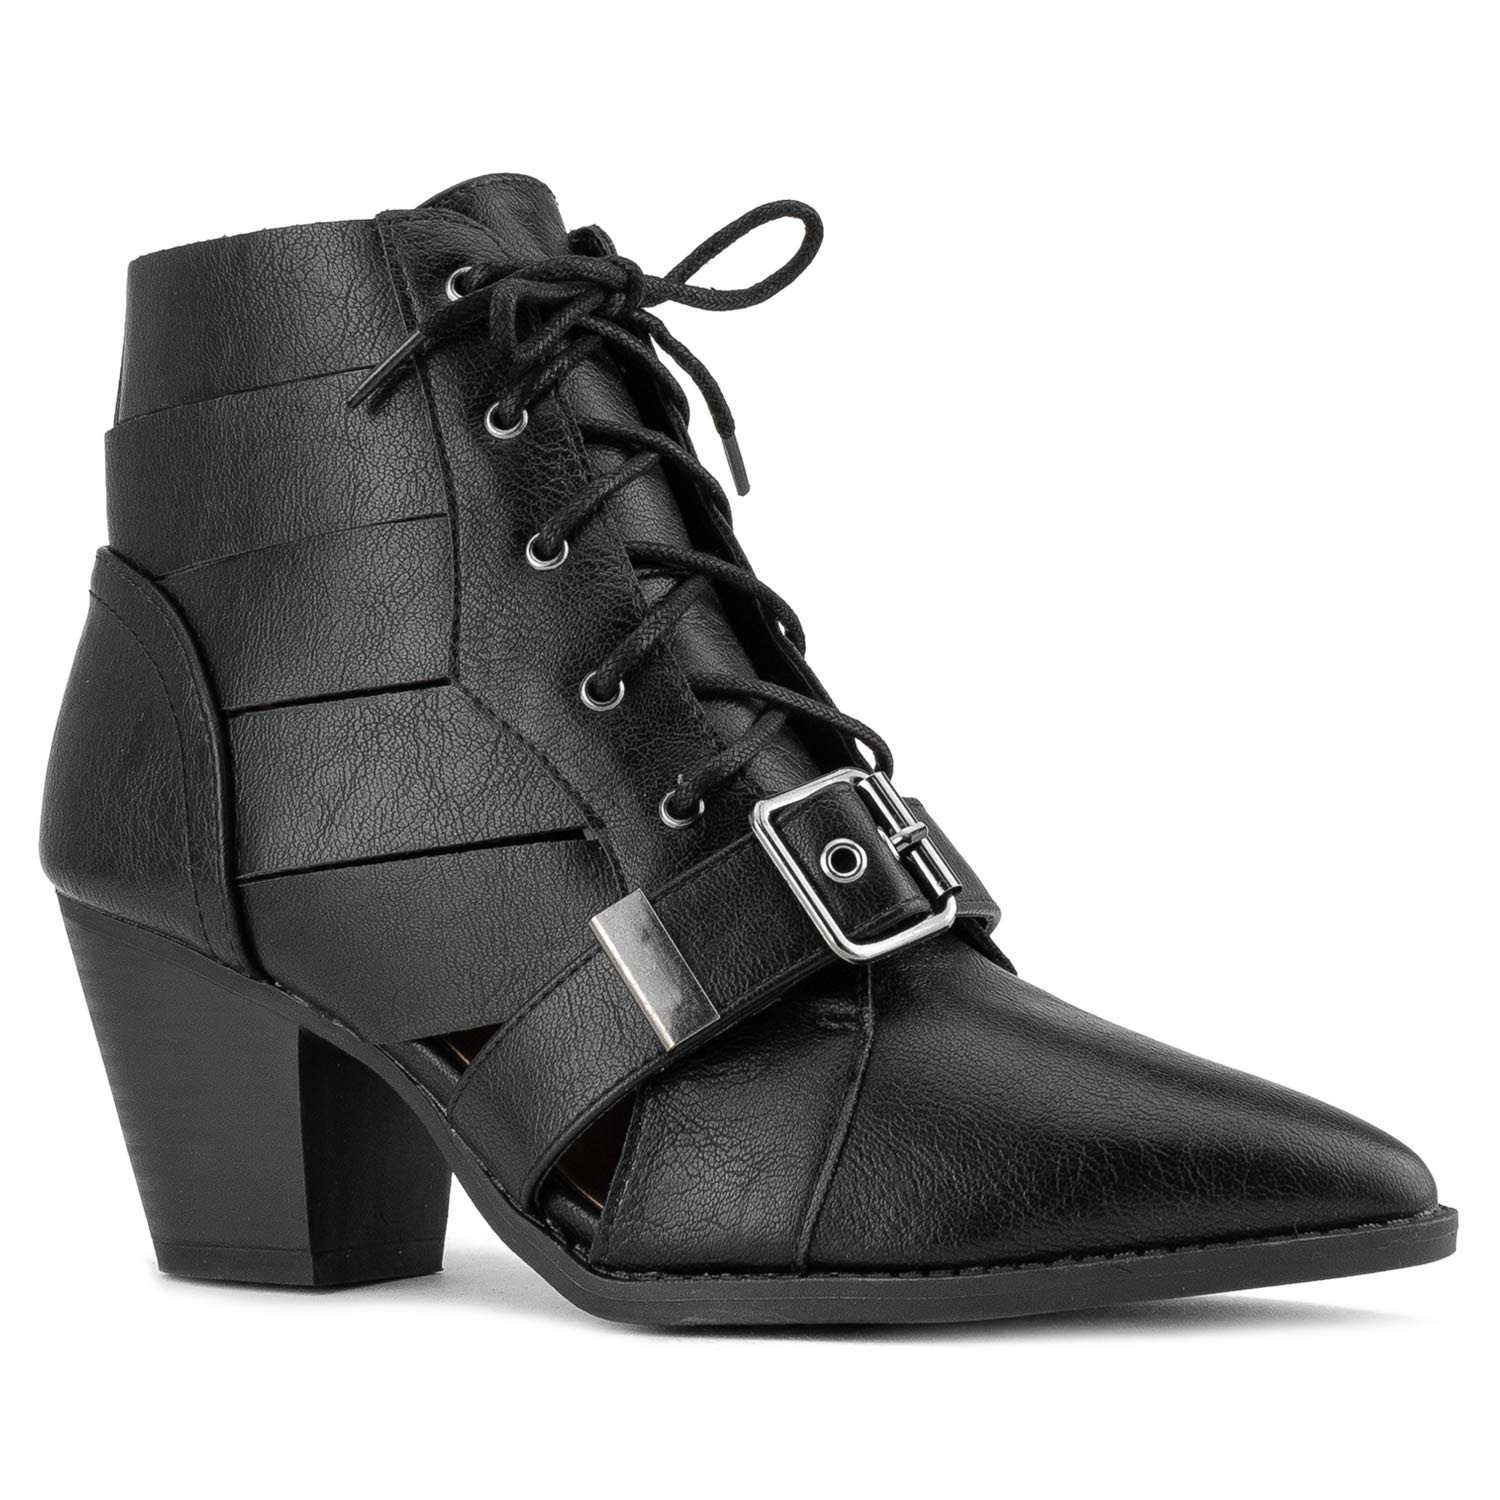 8c042f77c15ab Amazon.com   RF ROOM OF FASHION Women's Woven Crisscross Buckle Strap  Pointy Toe Ankle Booties   Ankle & Bootie